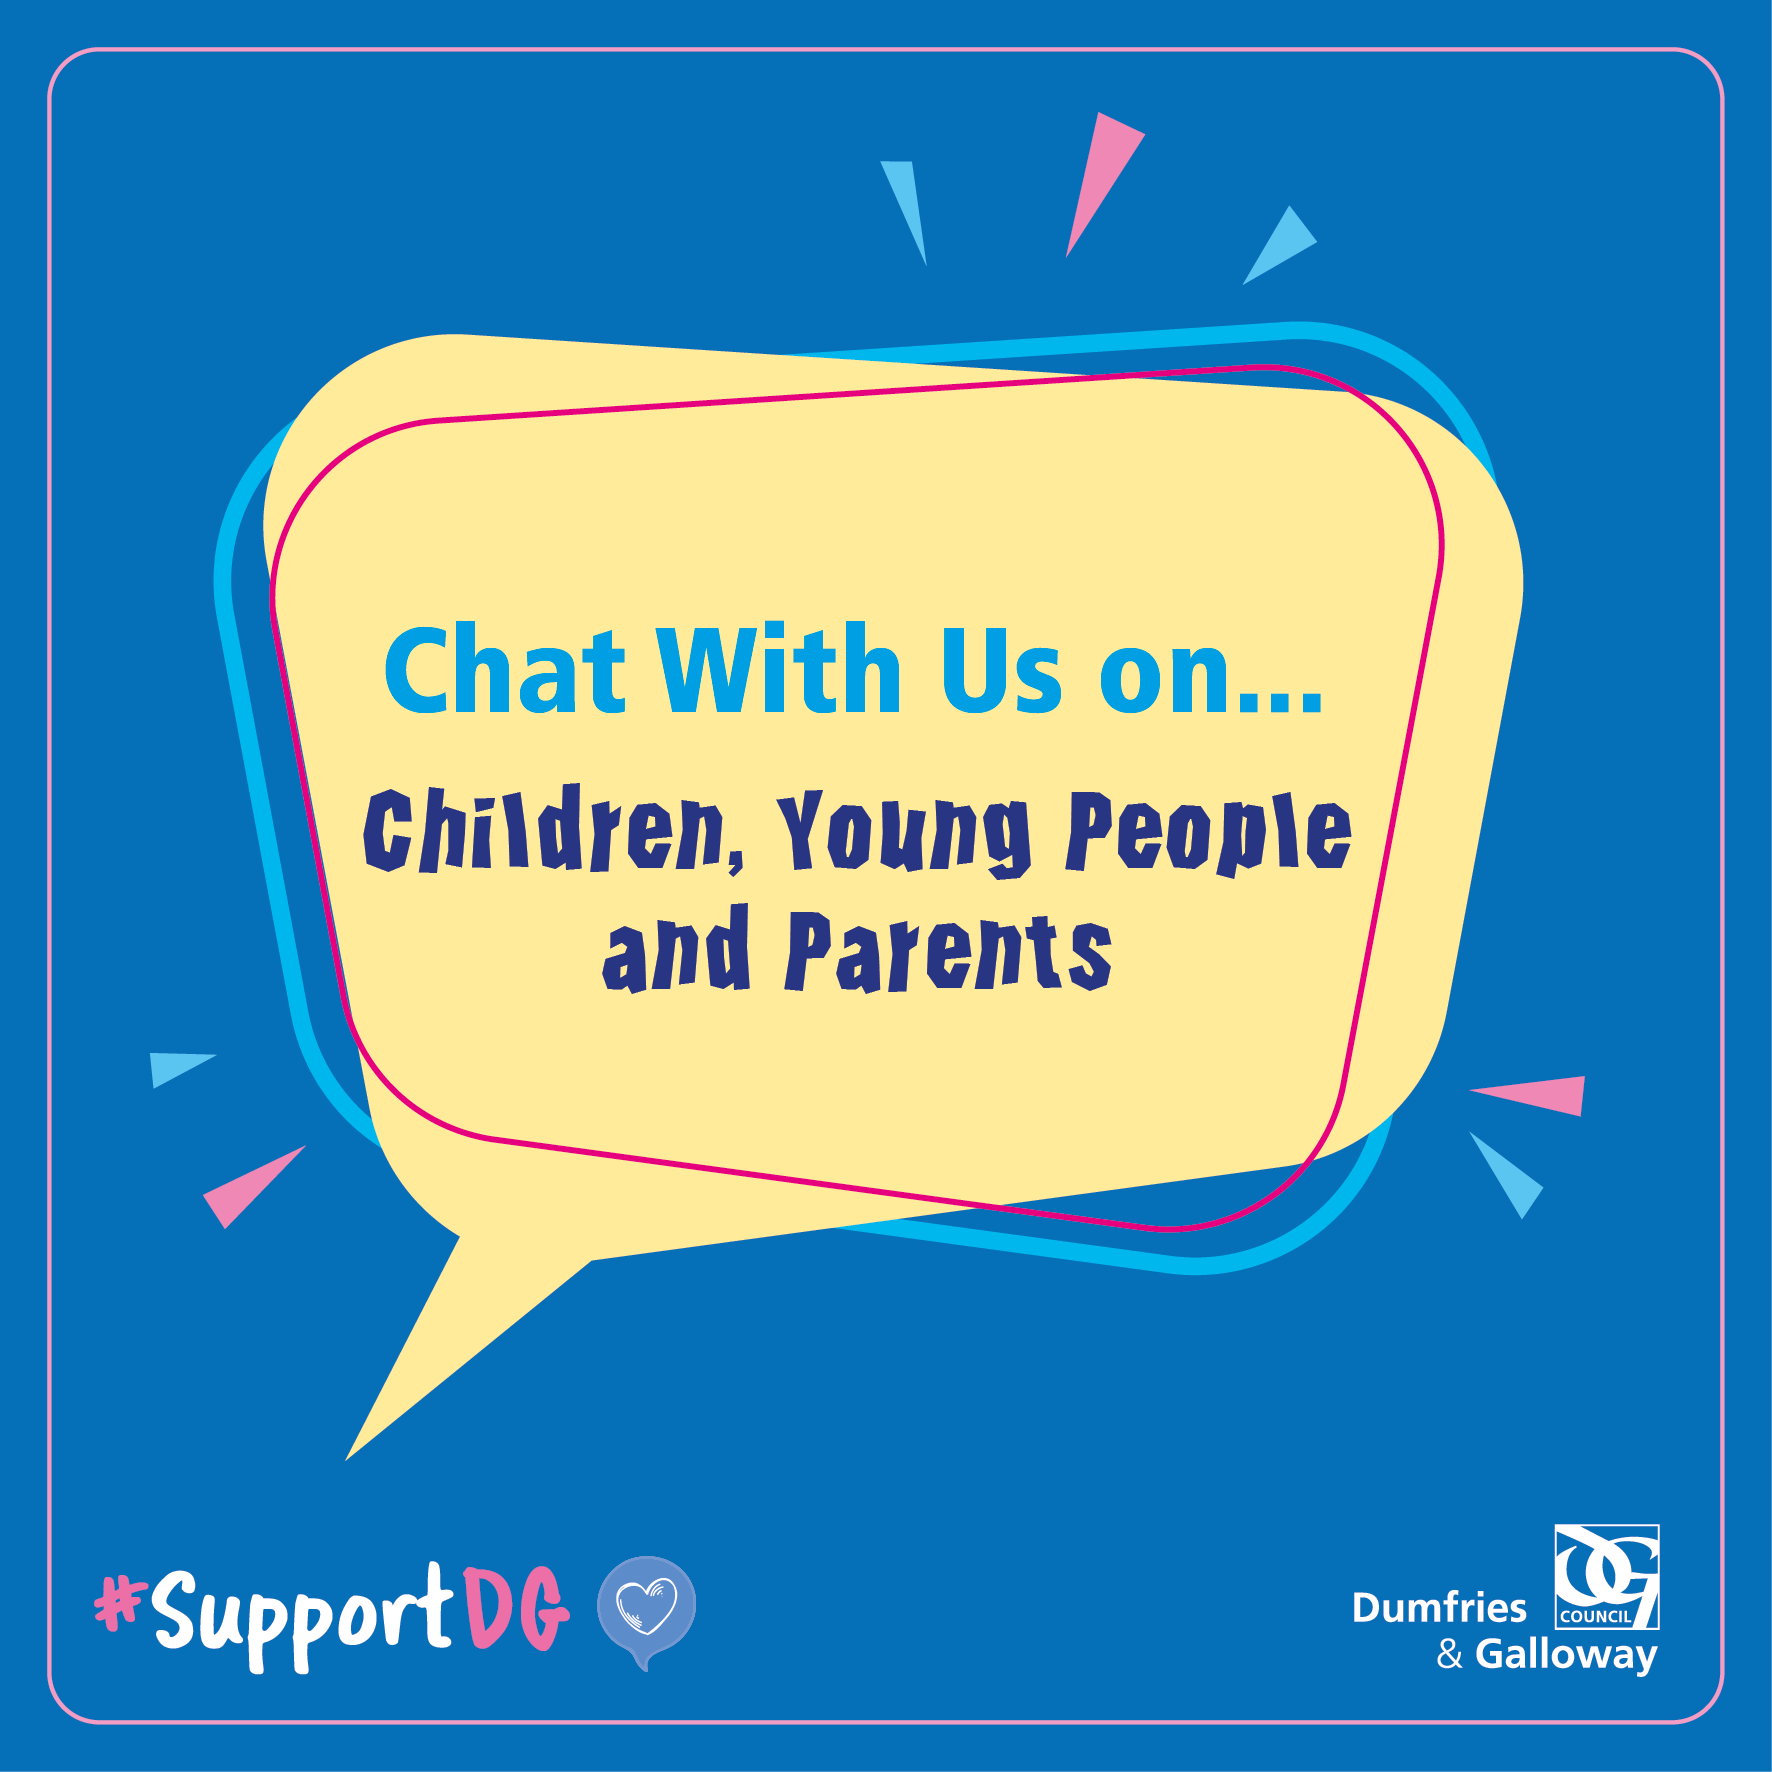 An image relating to Chat with us on - Children, Young People and Parents